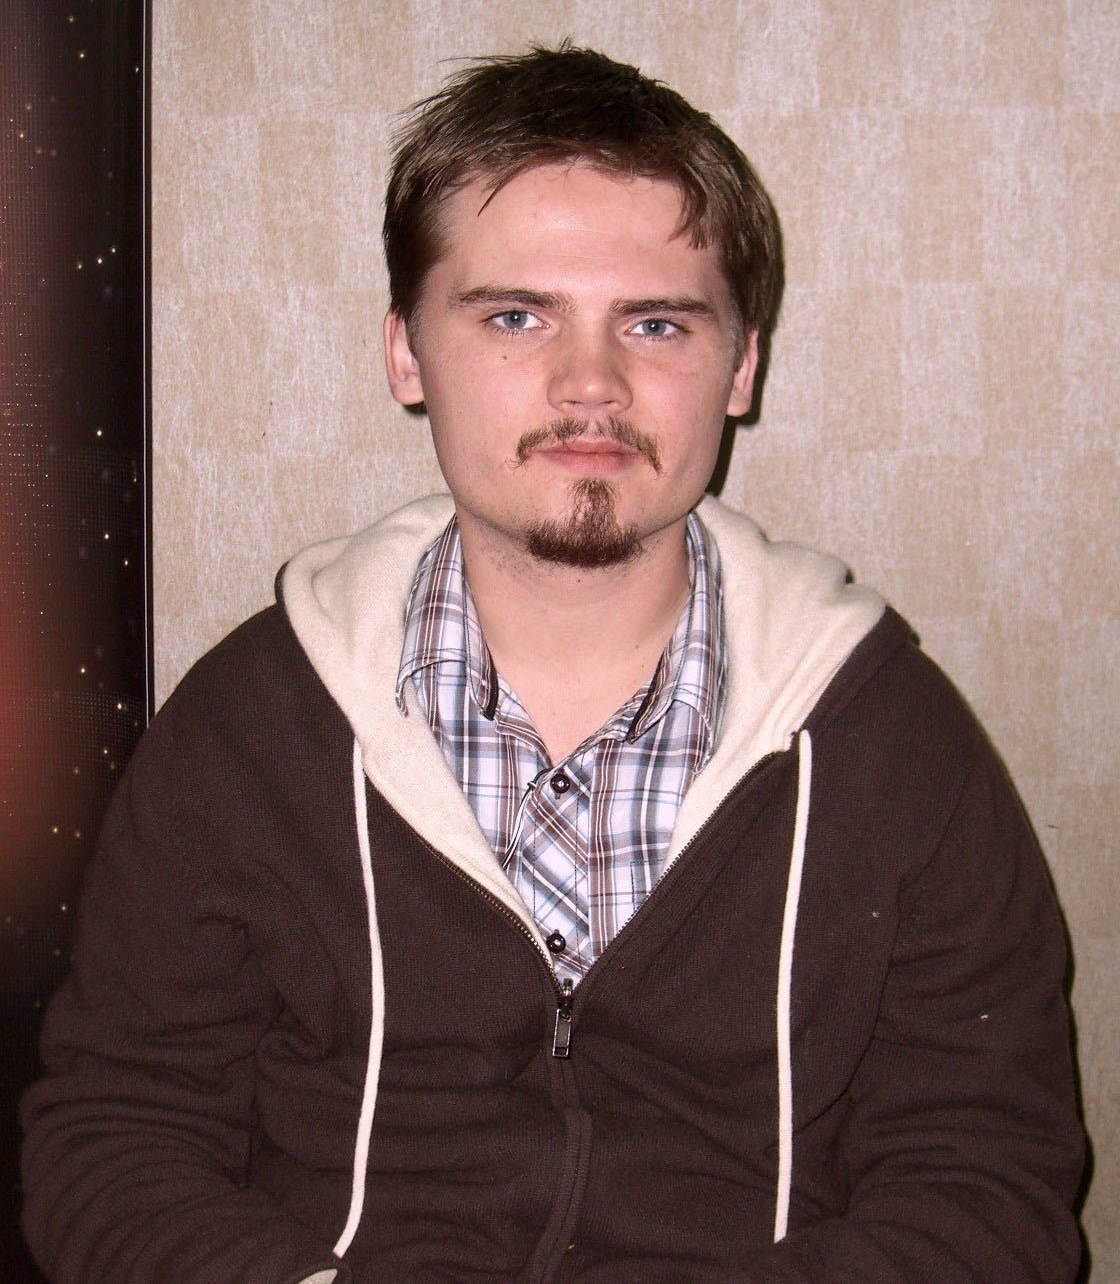 jake lloyd now